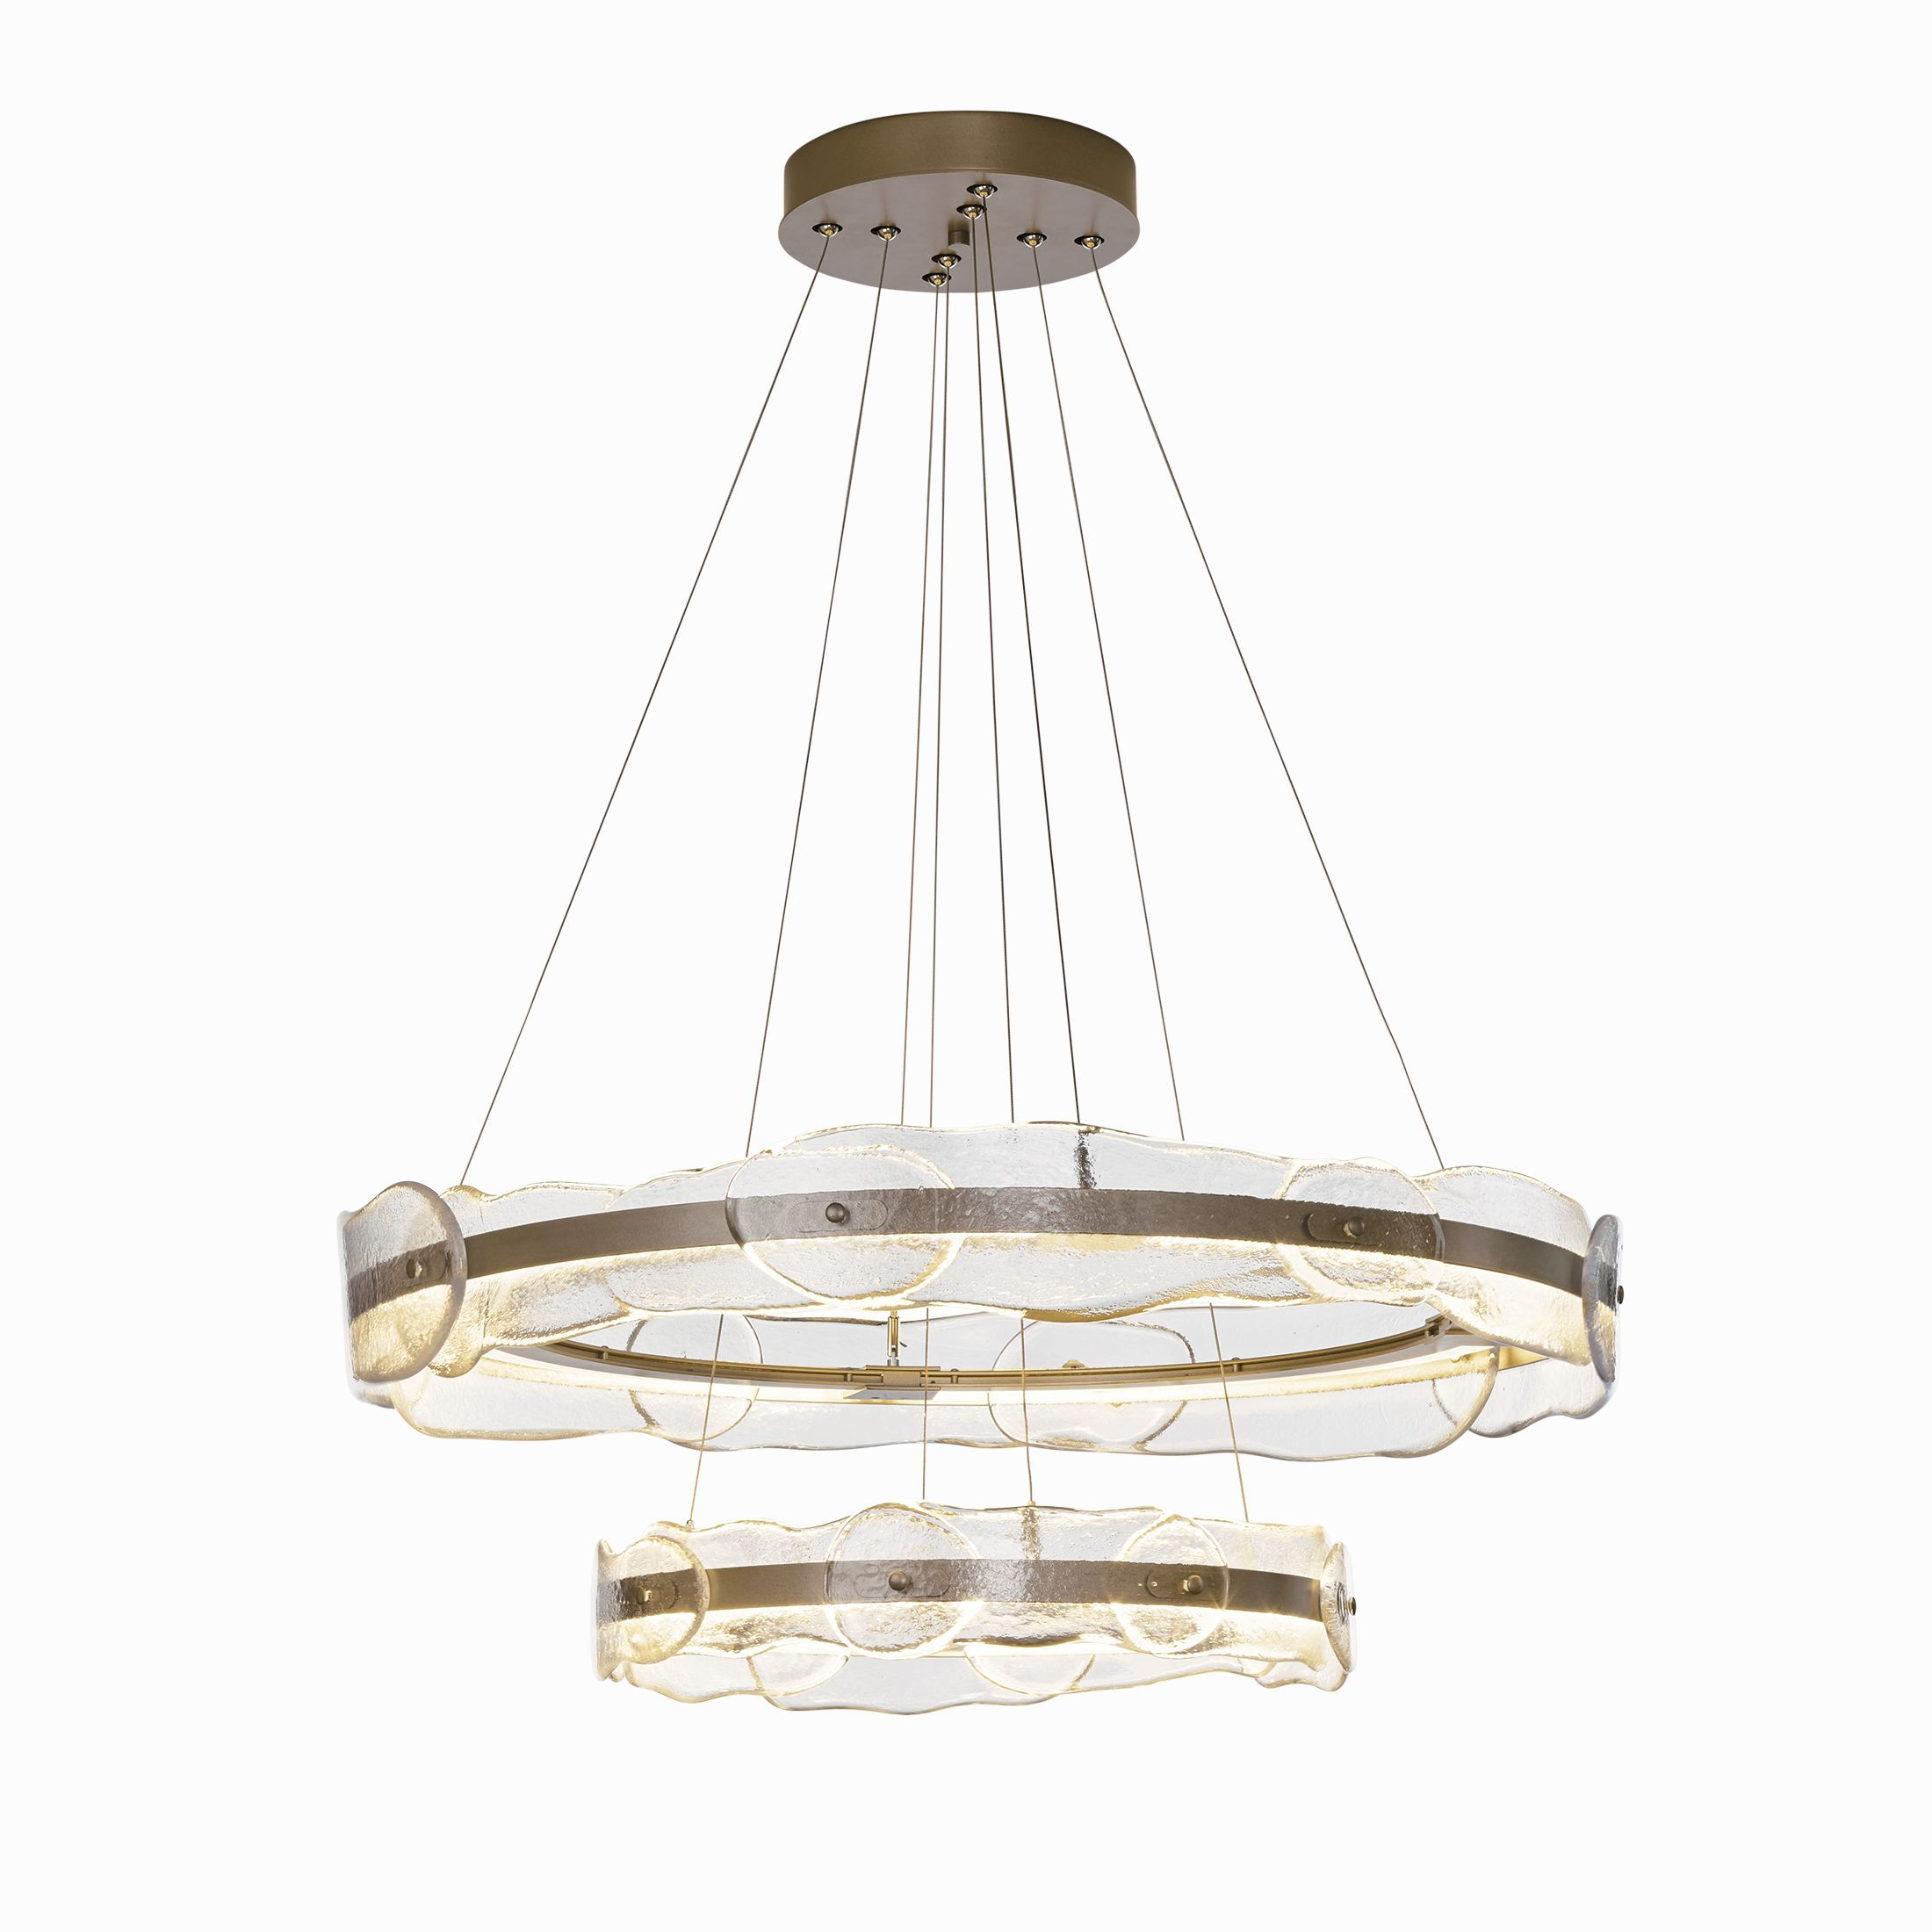 Solstice led tiered pendant an elegant two tiered pendant solstice led tiered pendant an elegant two tiered pendant featuring a graceful surround of art glass entices you to contemplate the beauty of this aloadofball Images